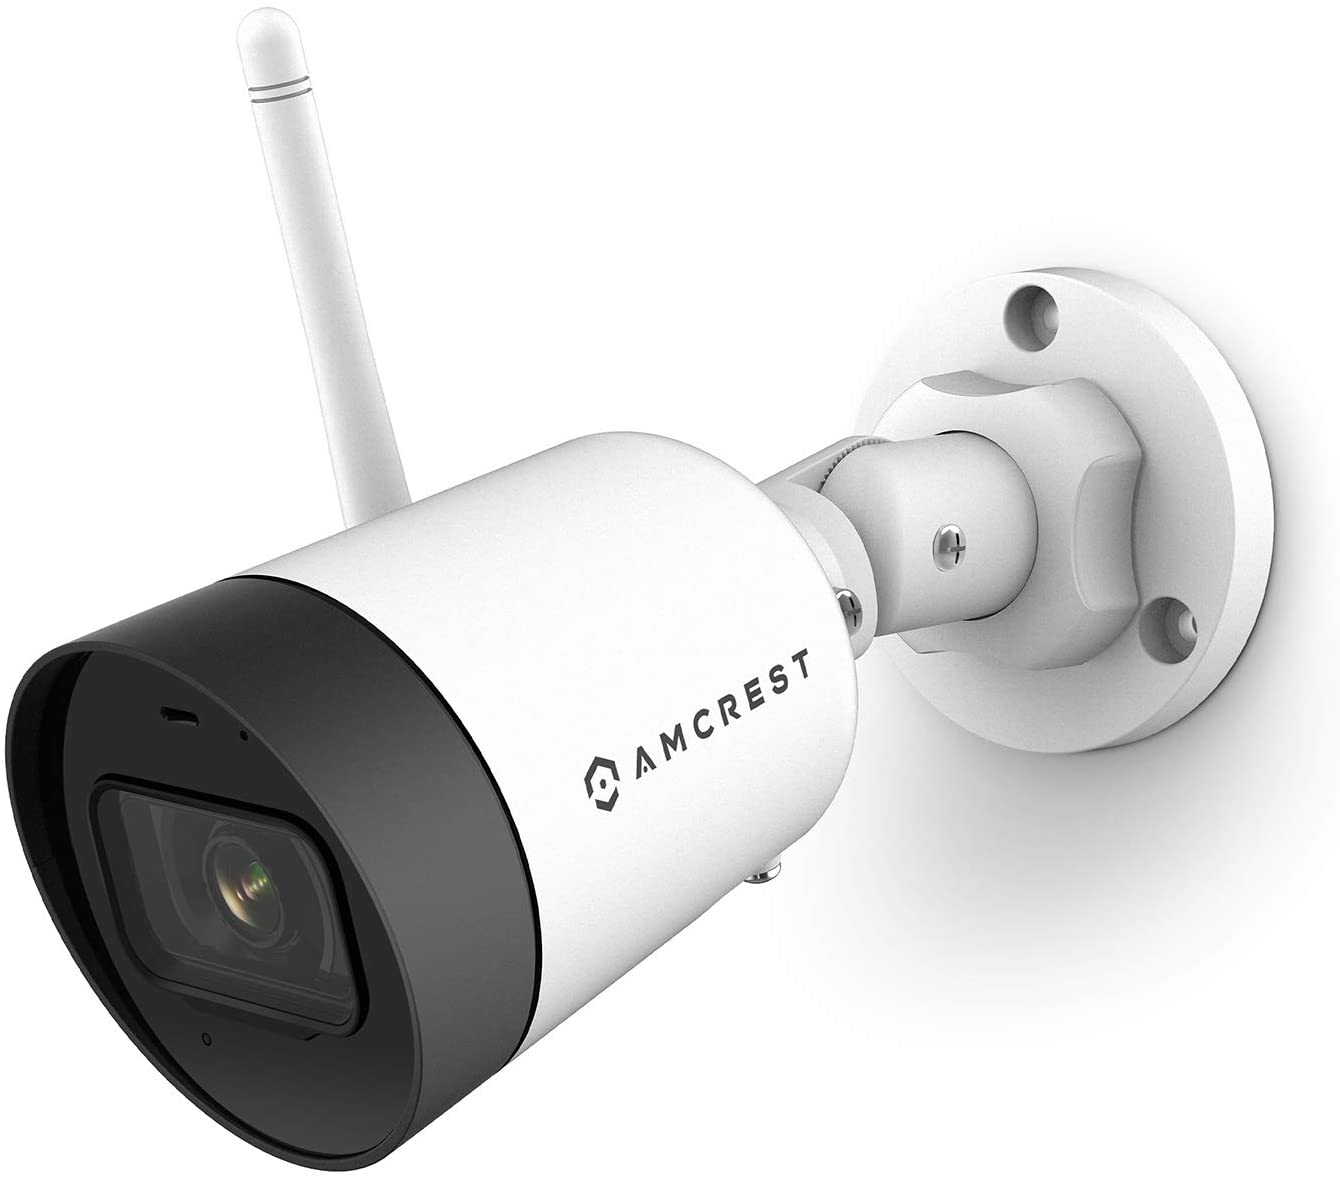 Amcrest SmartHome 4MP Outdoor WiFi Camera Bullet 4MP Outdoor Security Camera, 98ft Night Vision, Built-in Mic, 101° FOV, 2.8mm Lens, MicroSD Storage, ASH42-W (White)